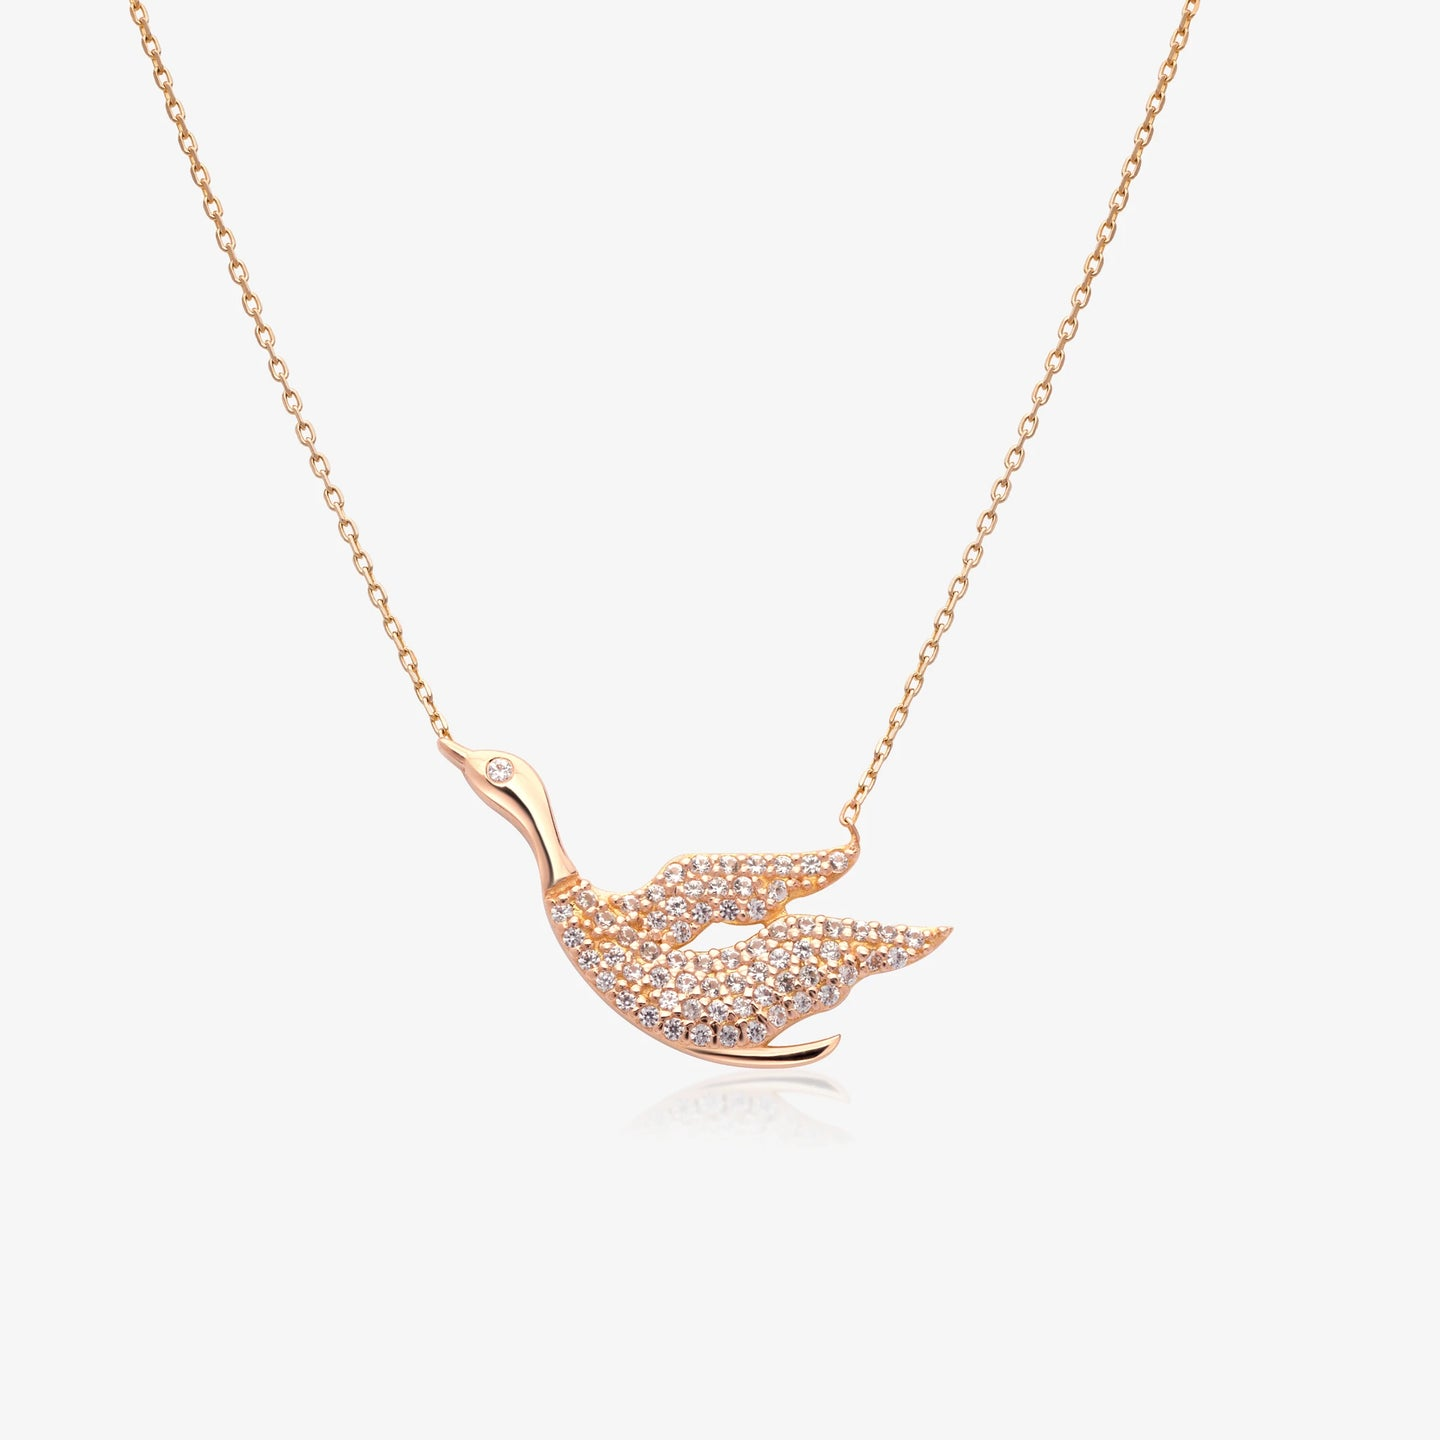 Sparkling Swan Pendant Necklace - estellacollection